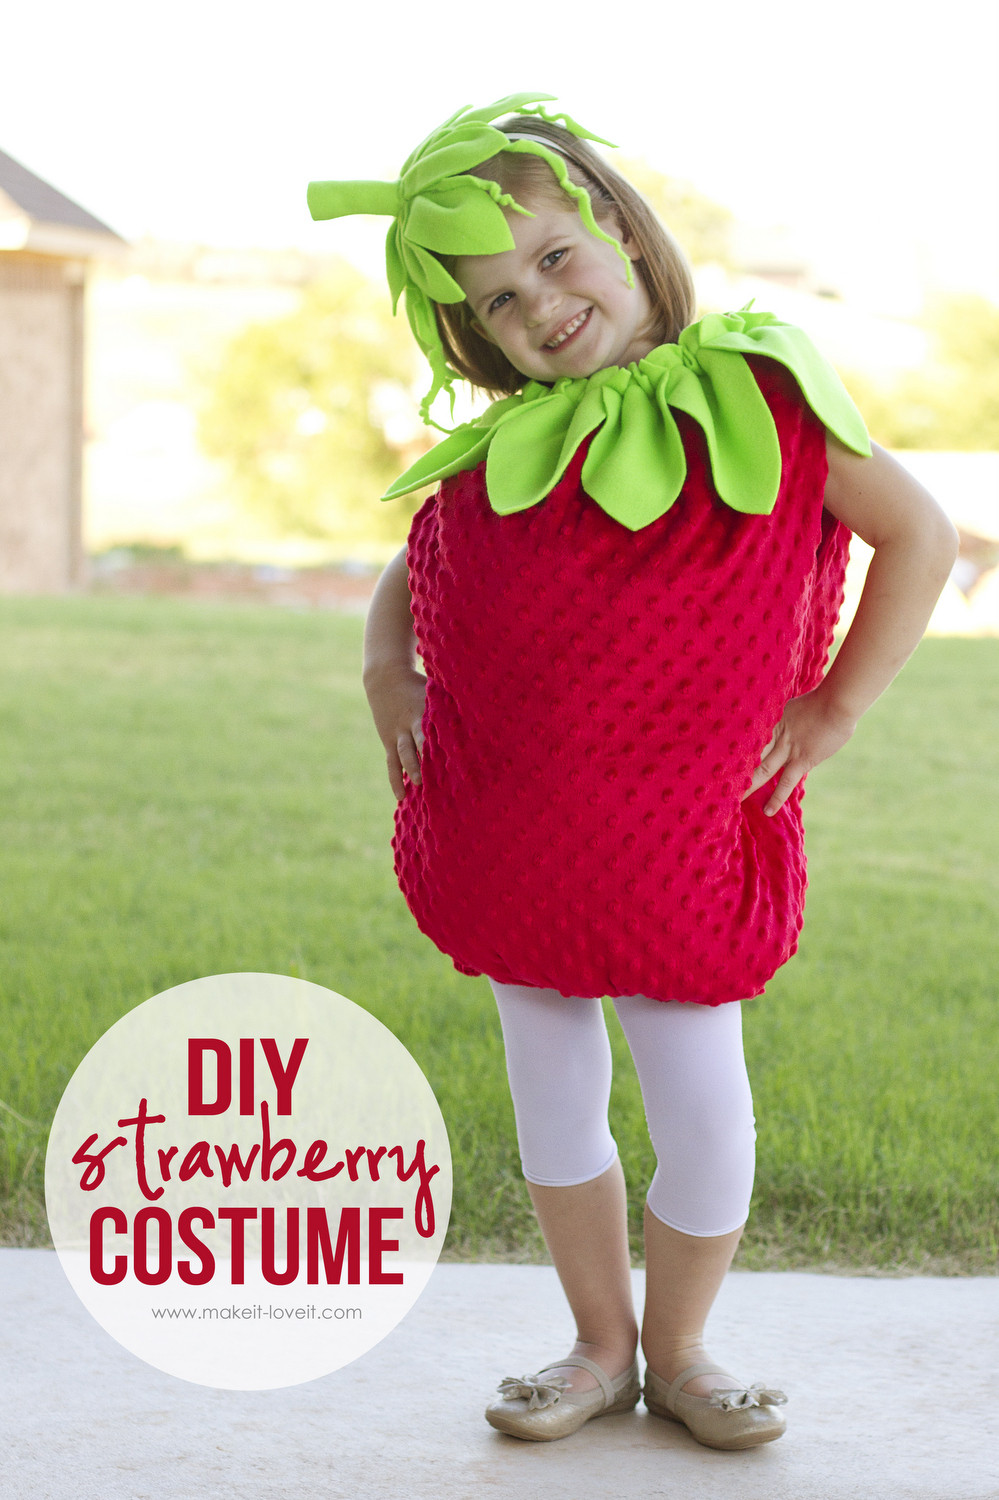 DIY Strawberry Costume  Can you figure this out a few personal things